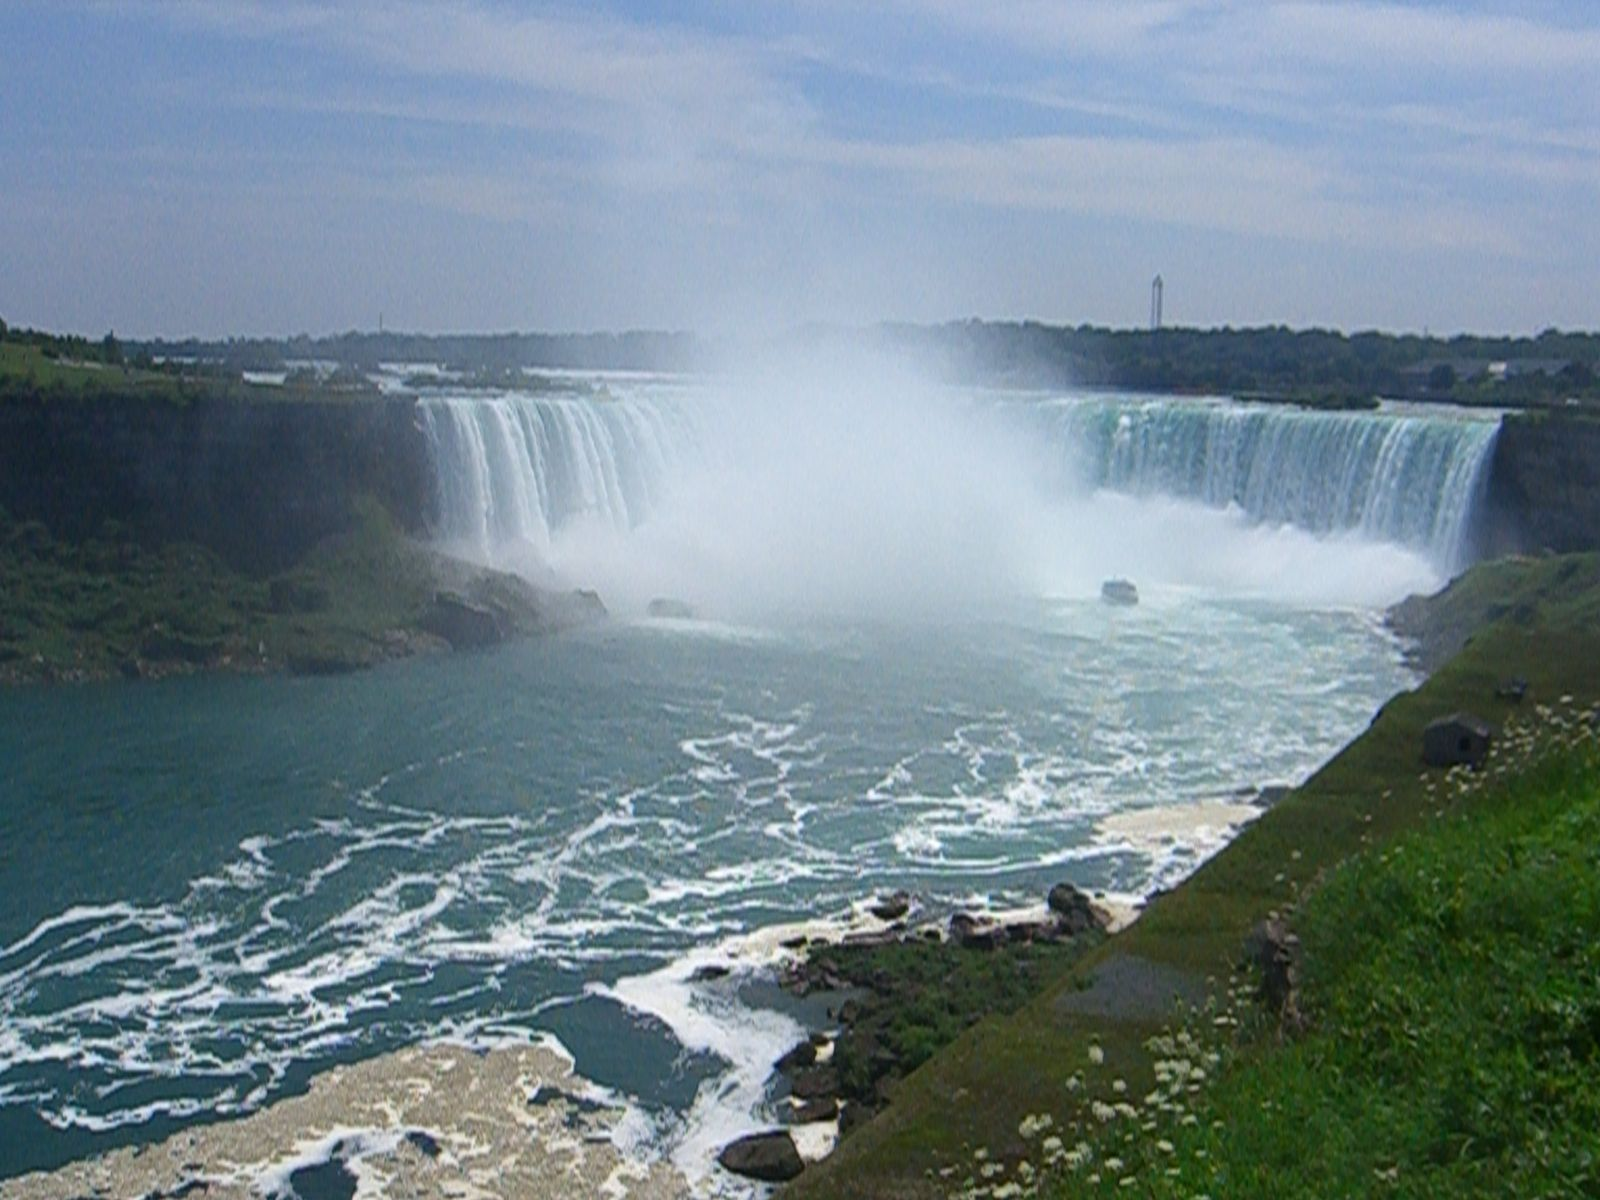 The Canadian Falls at Niagra - after getting soaked on the boat, we got smart and took photos from the banks!